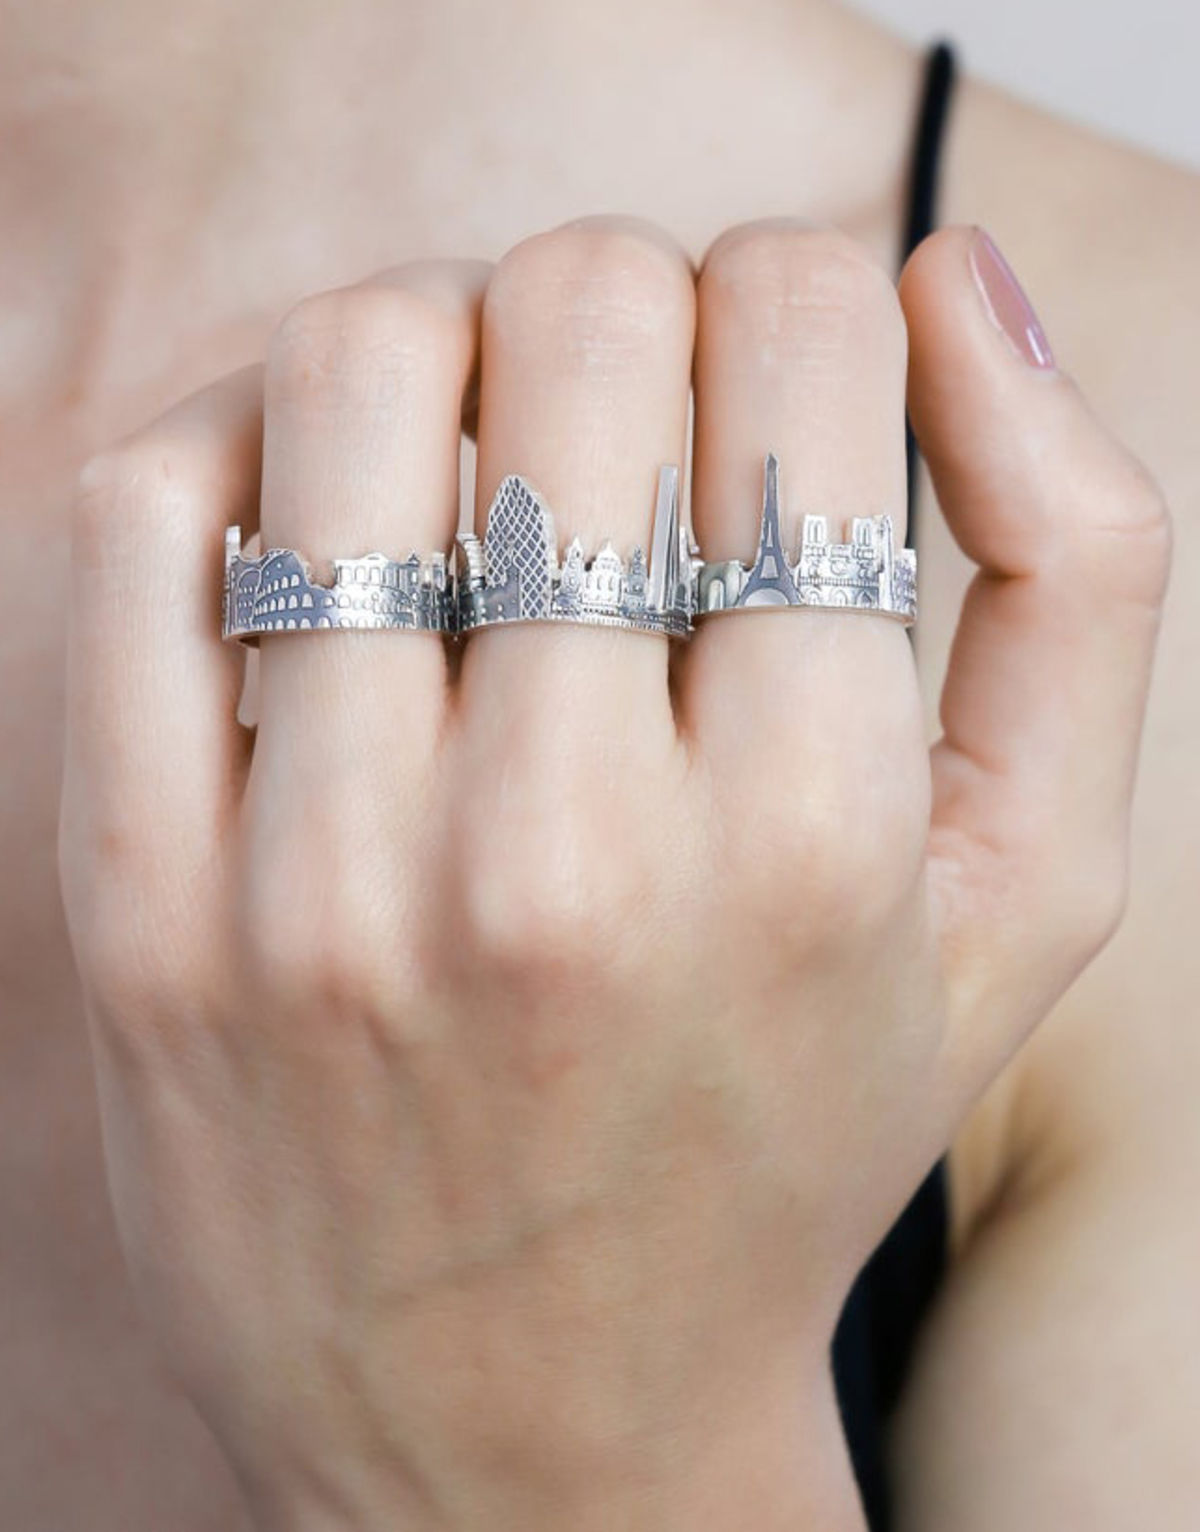 hand wearing silver rings in the shape of city skylines